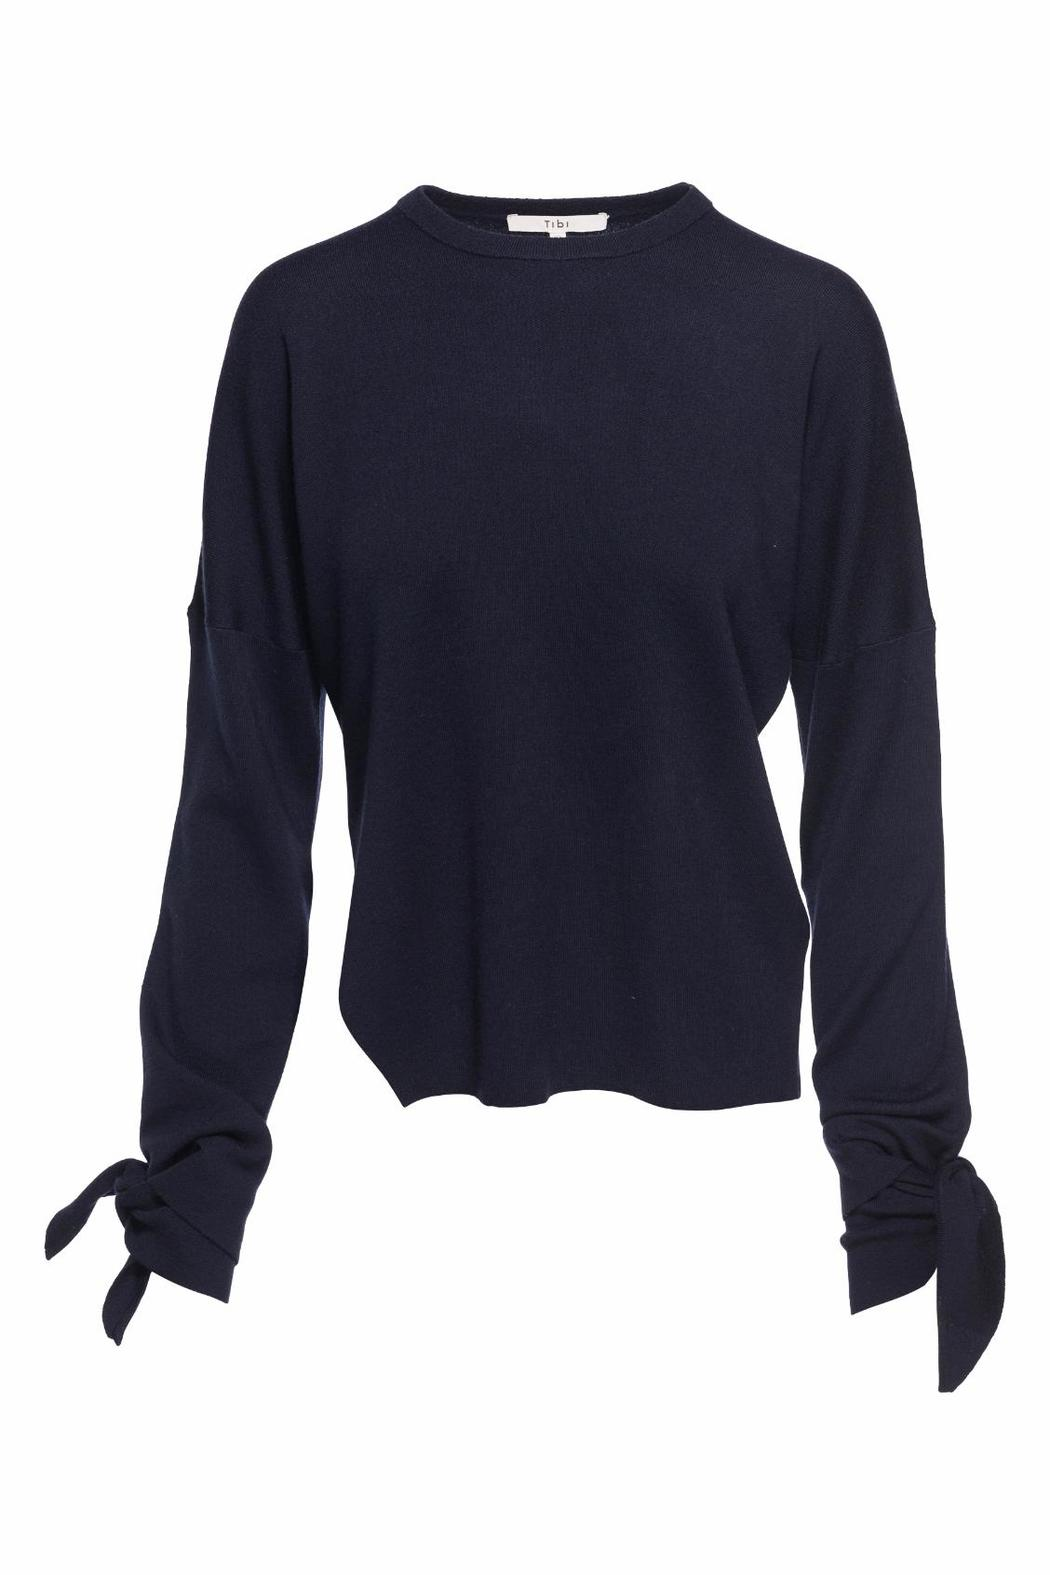 Tibi Tie Sleeve Sweater - Main Image